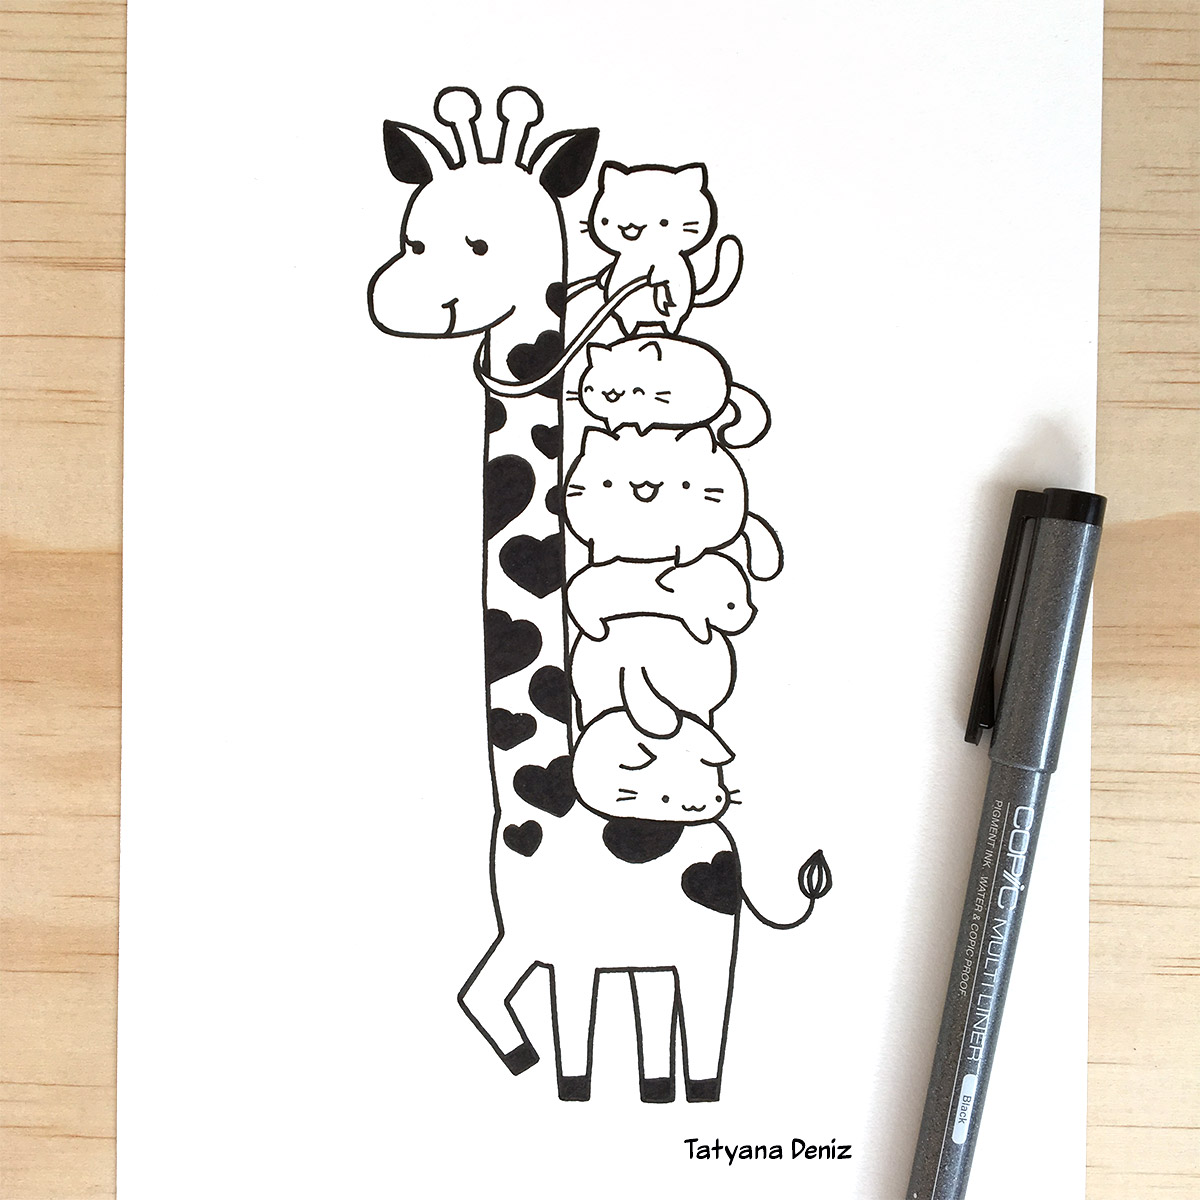 Cute and funny drawing of a cat pile riding a giraffe